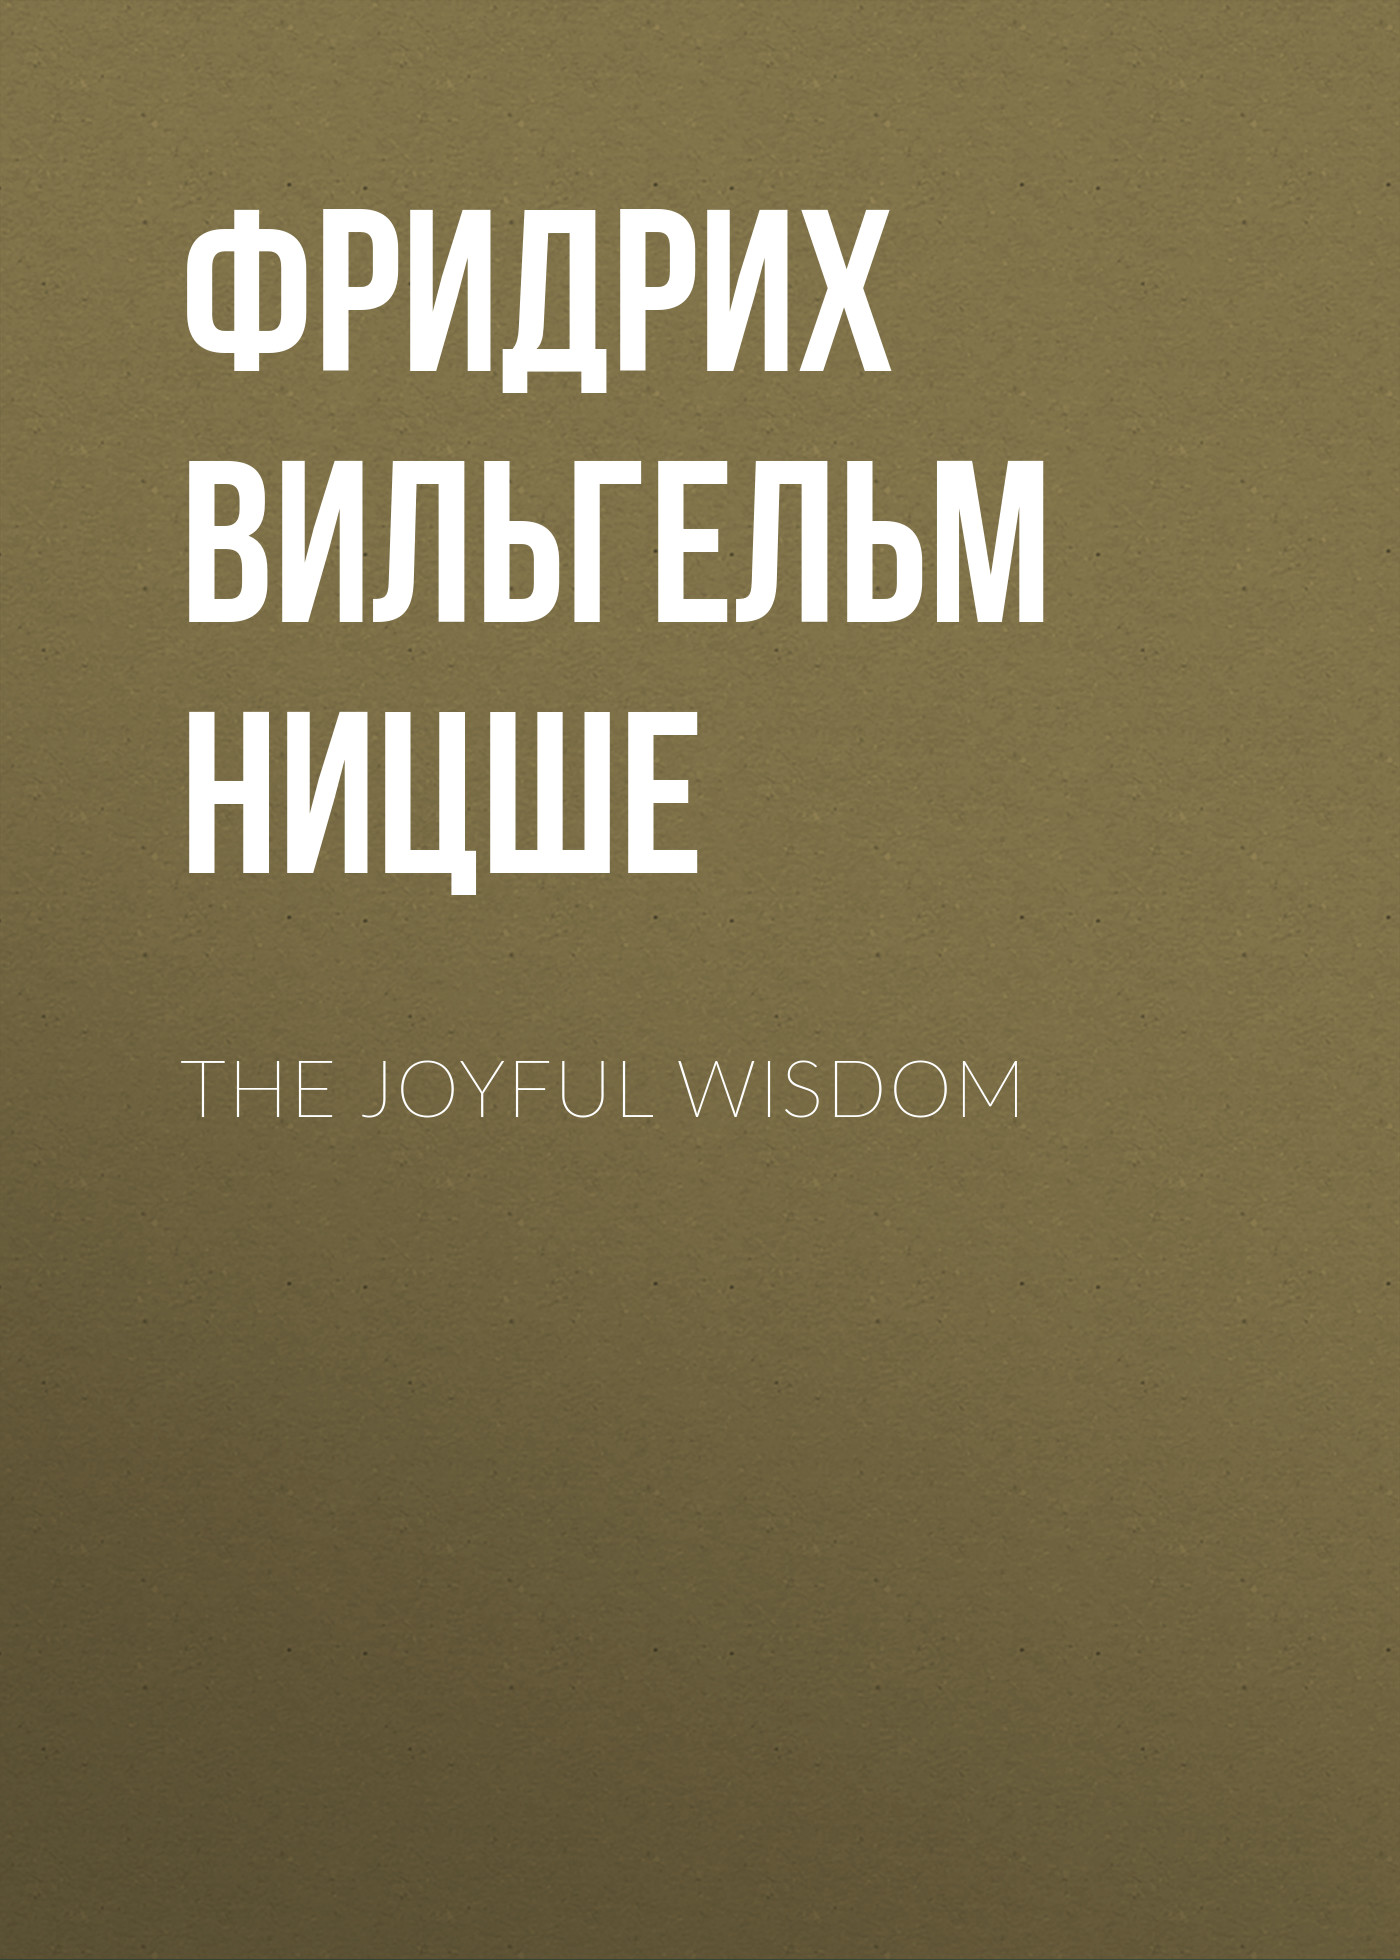 Фридрих Вильгельм Ницше The Joyful Wisdom